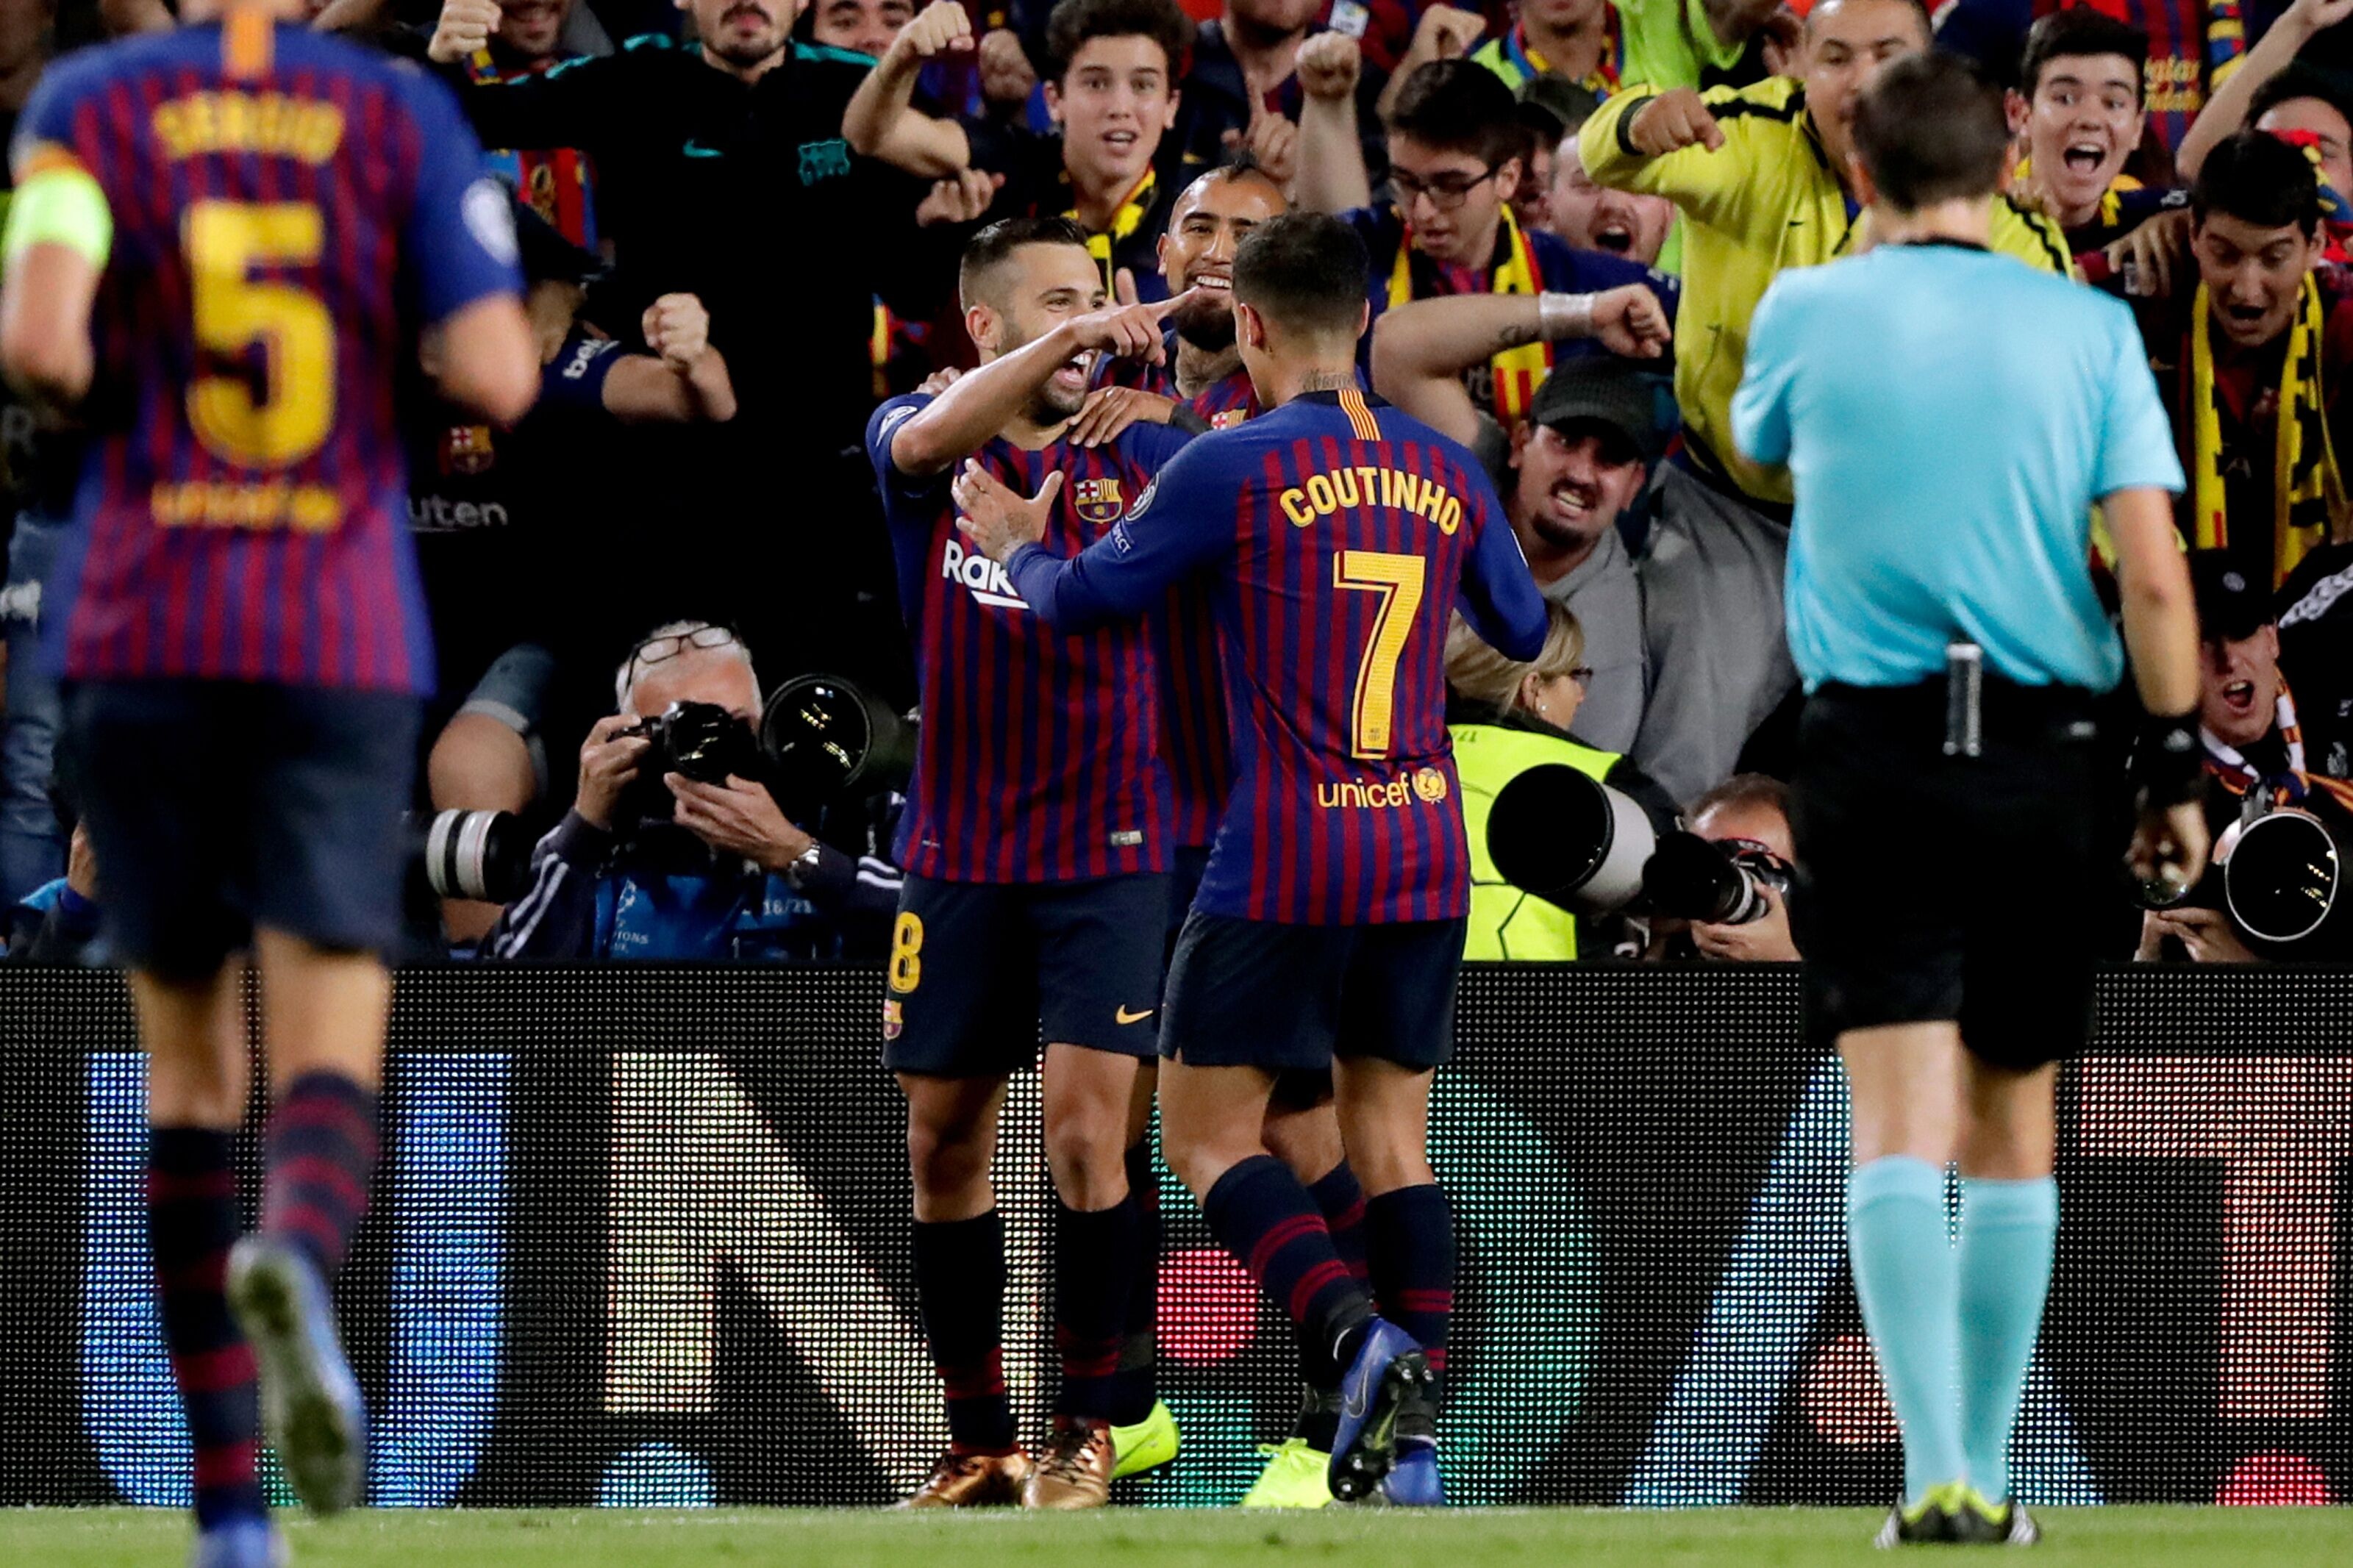 Barcelona: Philippe Coutinho and Jordi Alba connection is starting to flourish